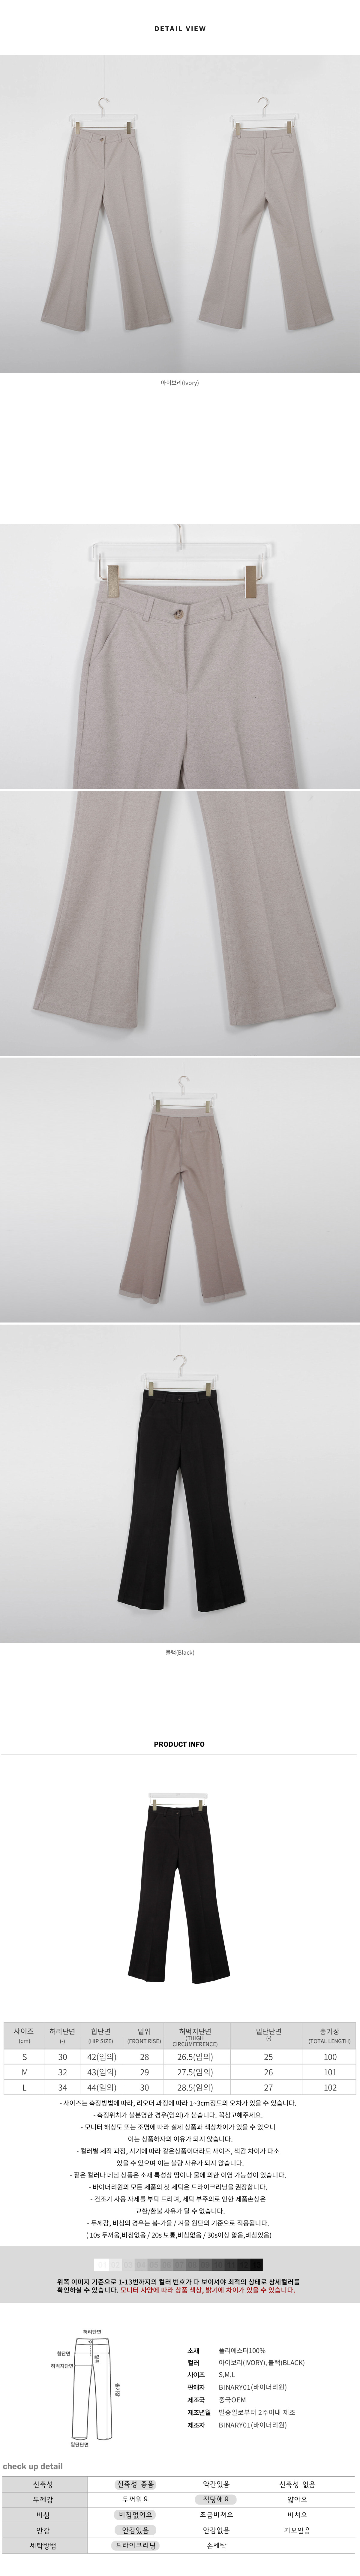 Lori Fleece-lined Flared slacks